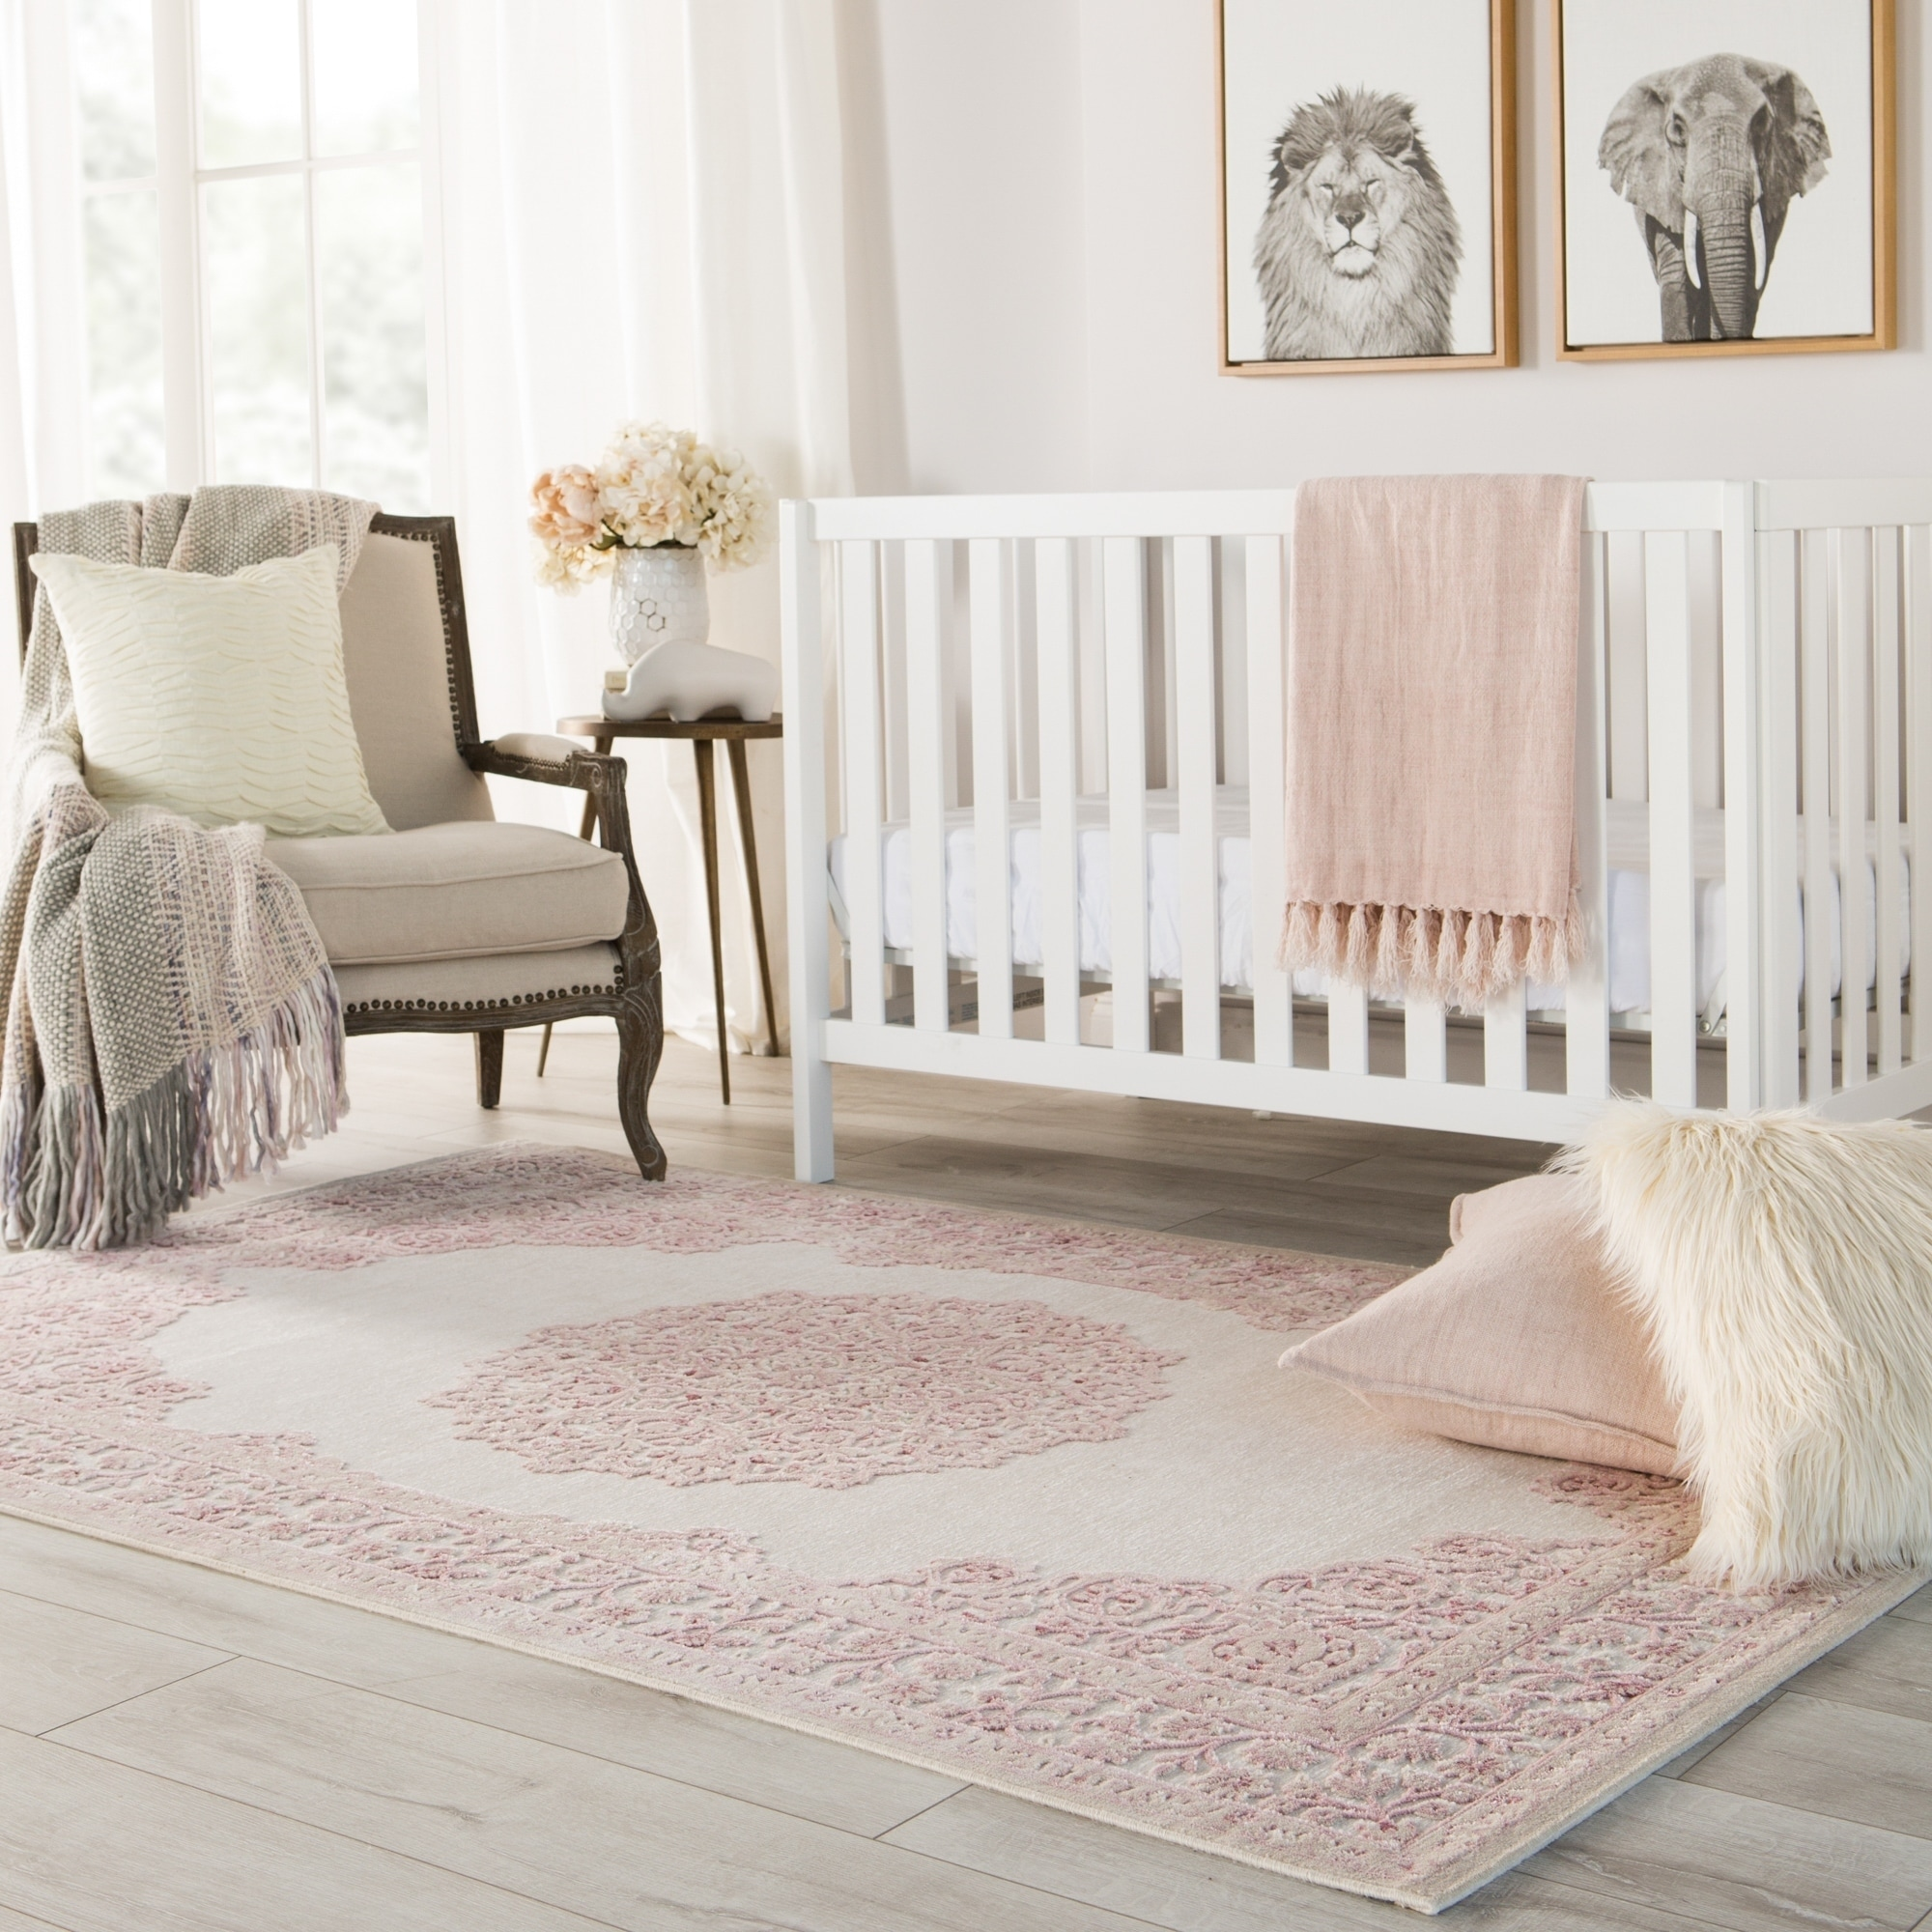 Copper Grove Pascal Medallion Pink/ White Area Rug - 76 x 96 (76 x 96 - Pink/White)